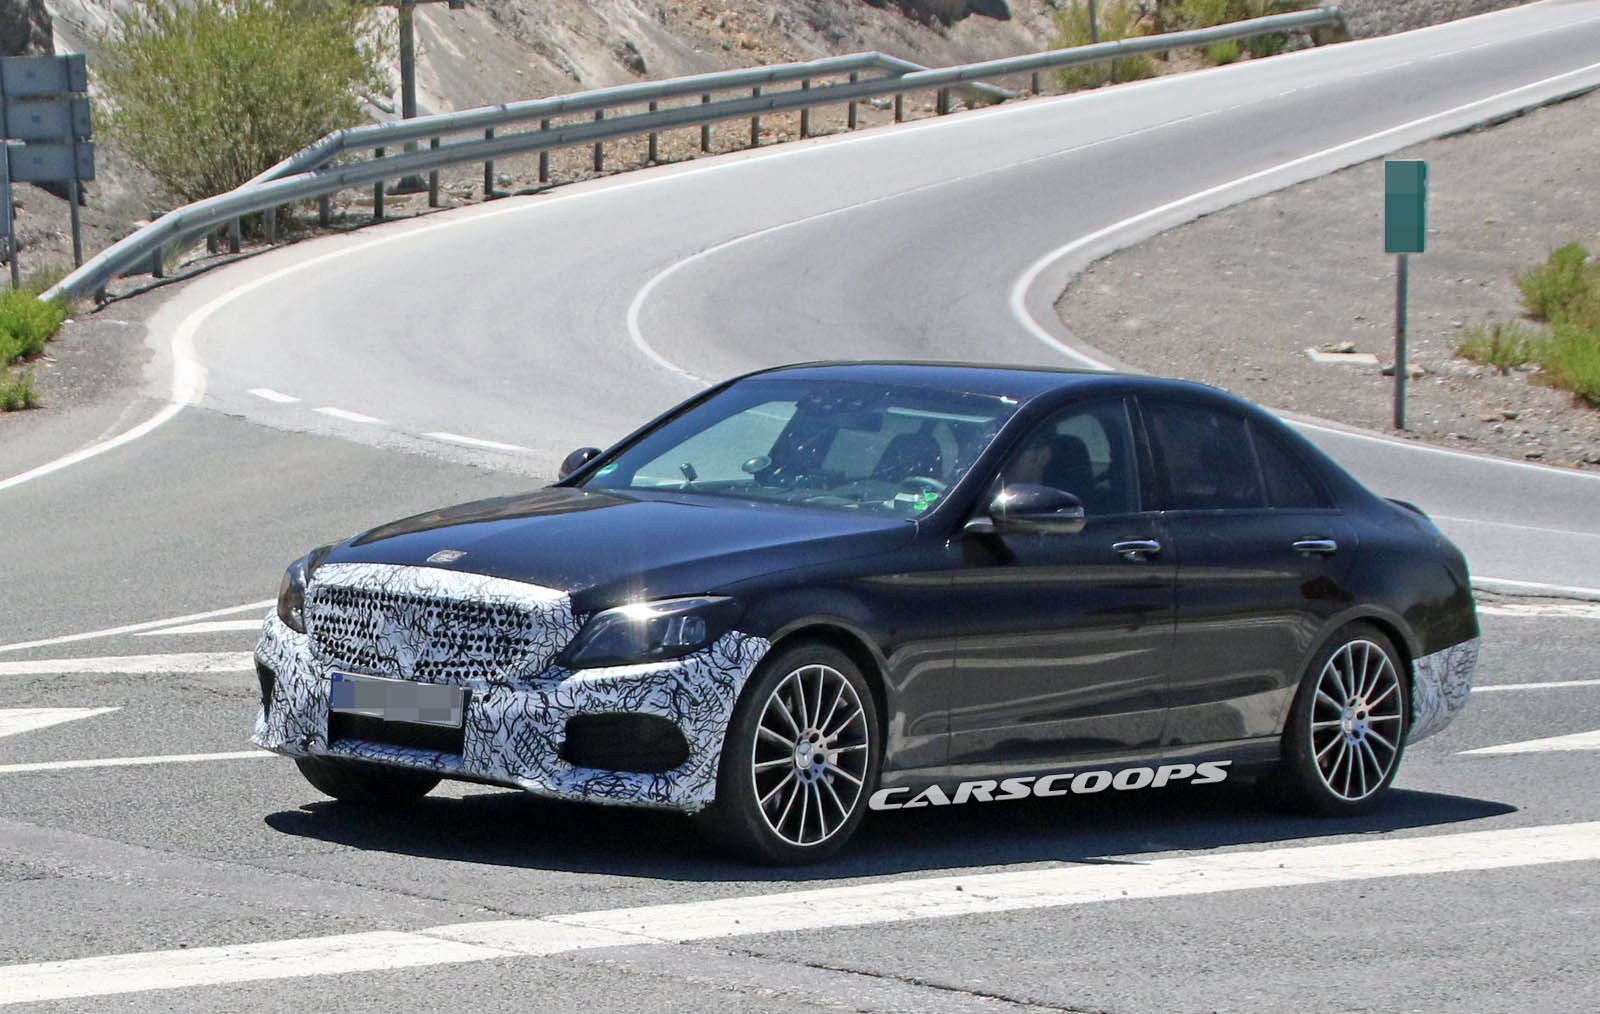 mercedes c class facelift looks about ready for its big debut carscoops. Black Bedroom Furniture Sets. Home Design Ideas